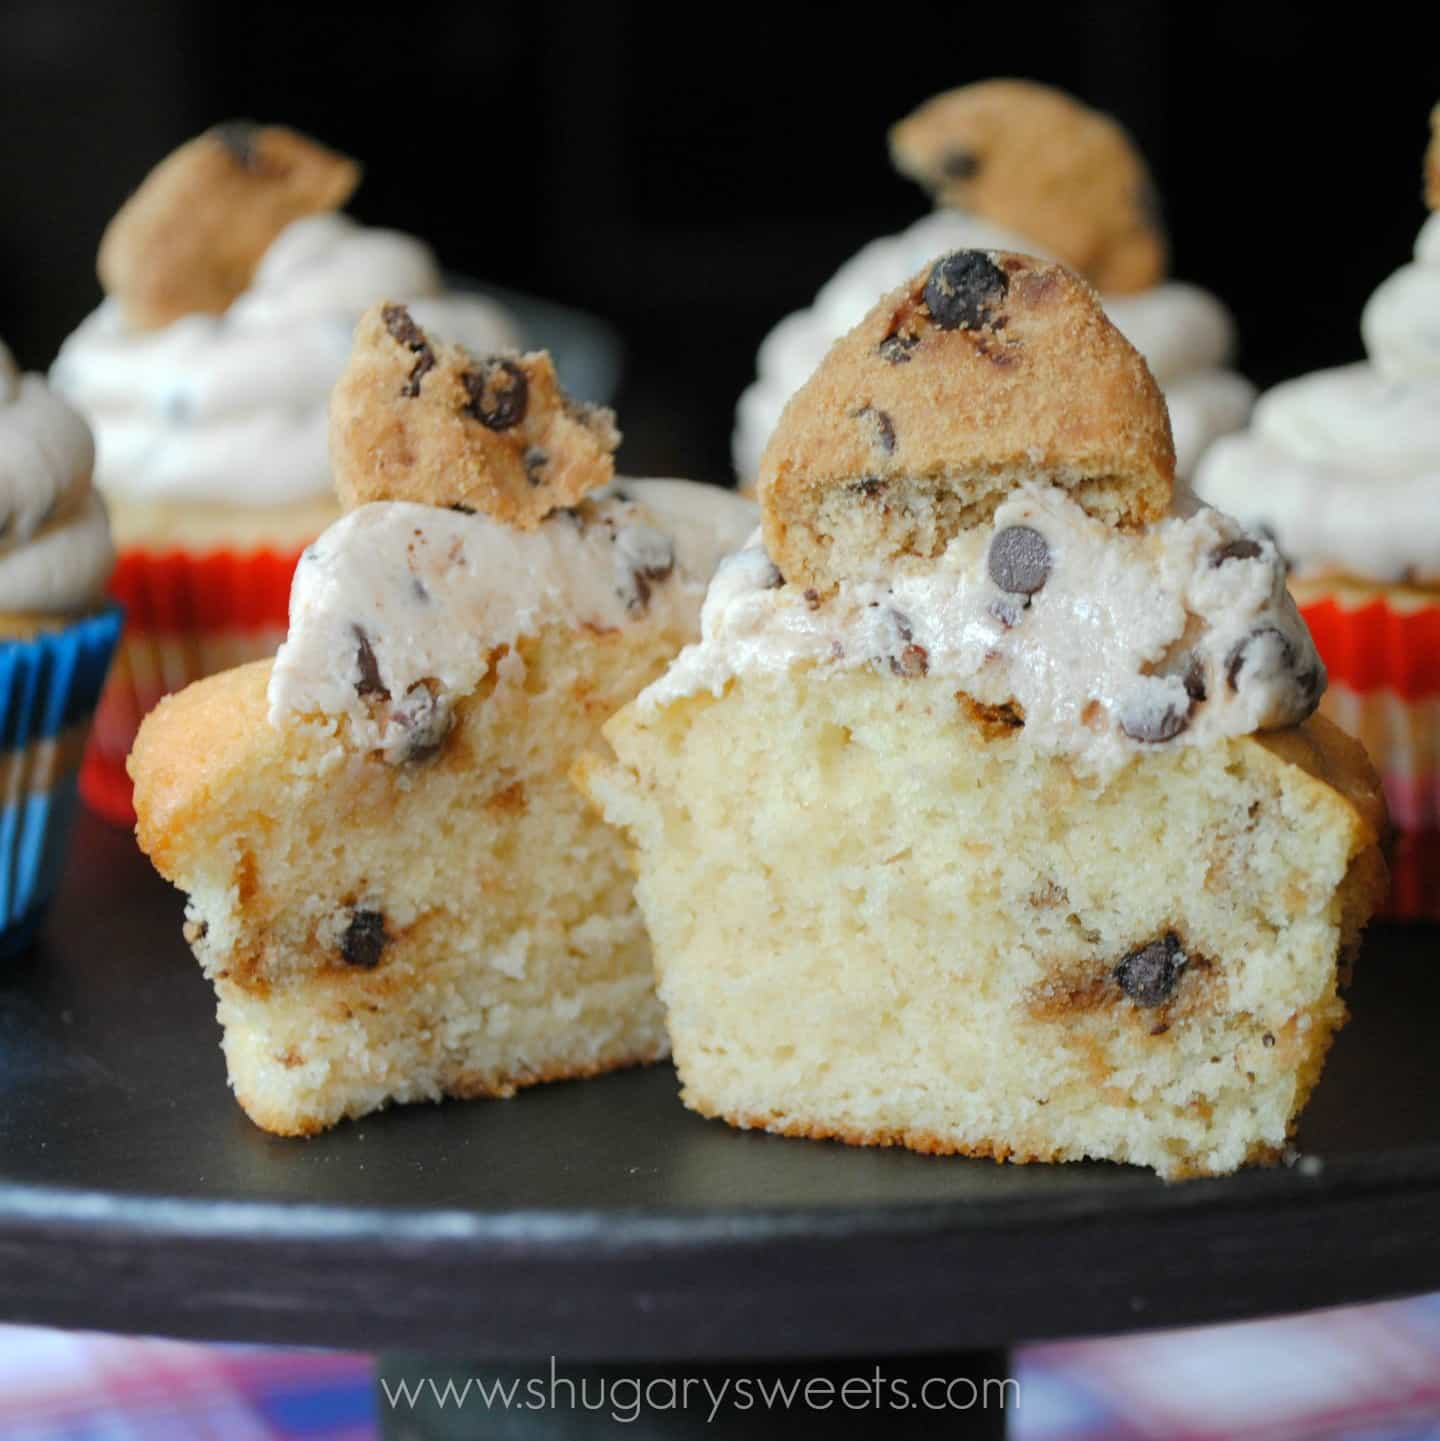 Chocolate Chip Cookie Dough Cupcakes - Shugary Sweets